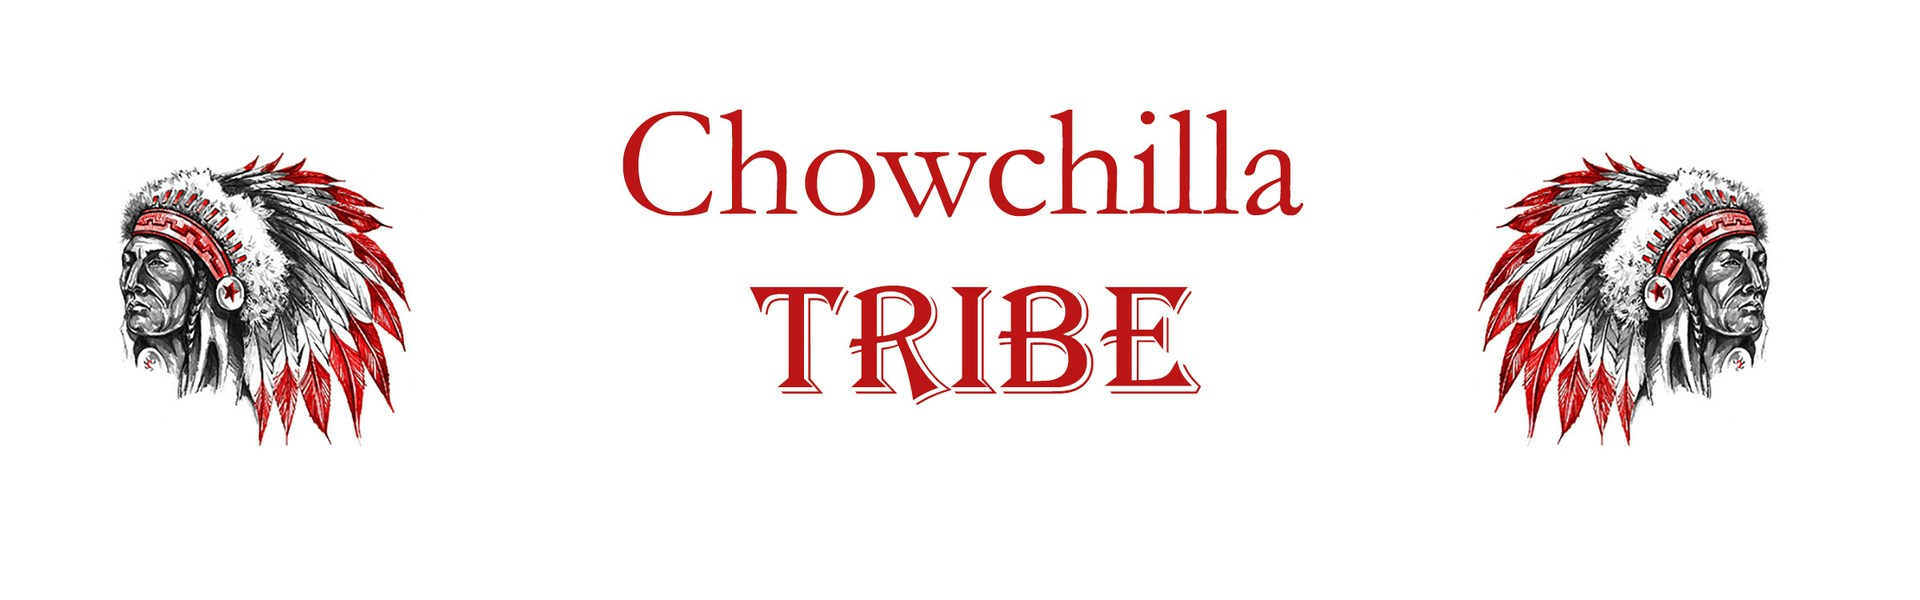 Chowchilla Tribe Banner with Indian Head Logo